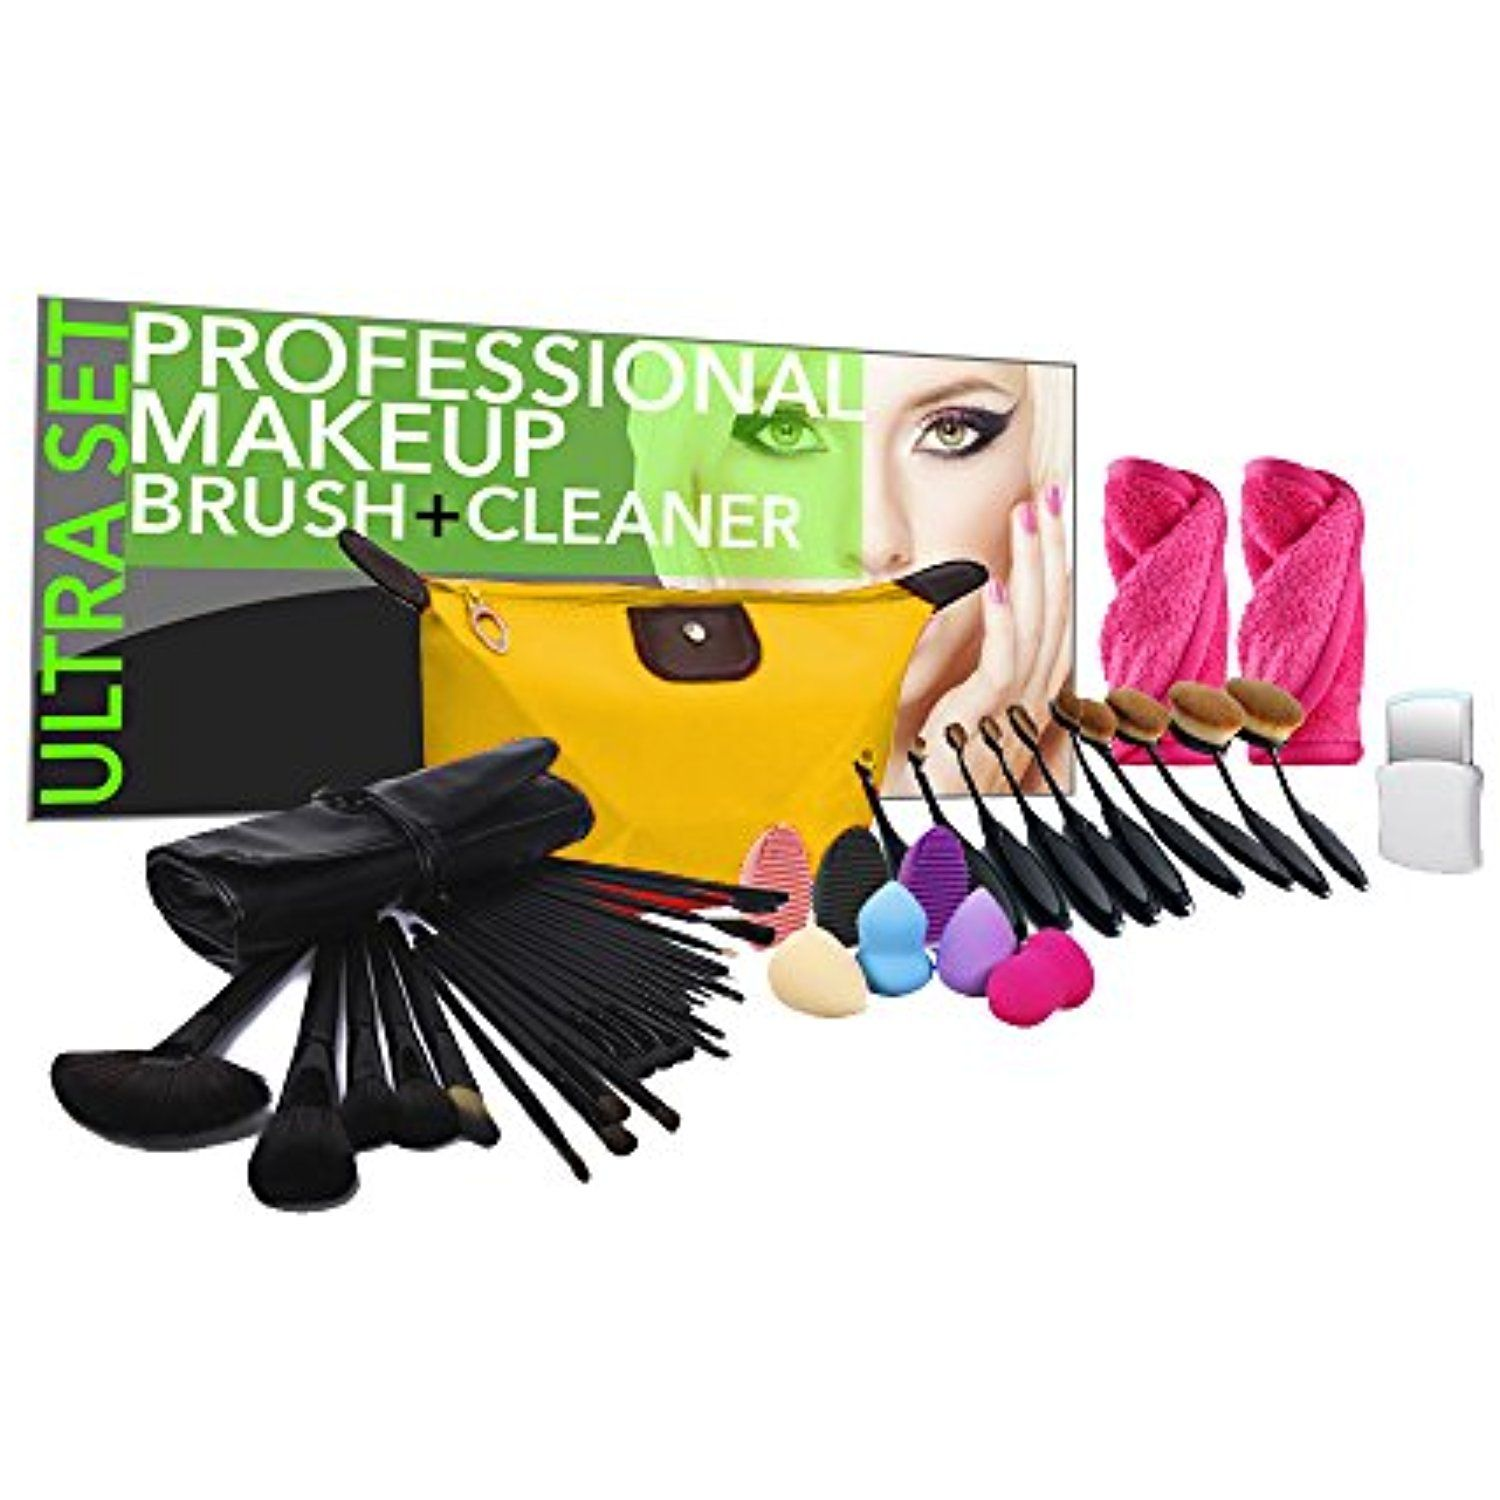 PU Beauty 45Piece Studio Makeup Brush and Cleaner Ultra